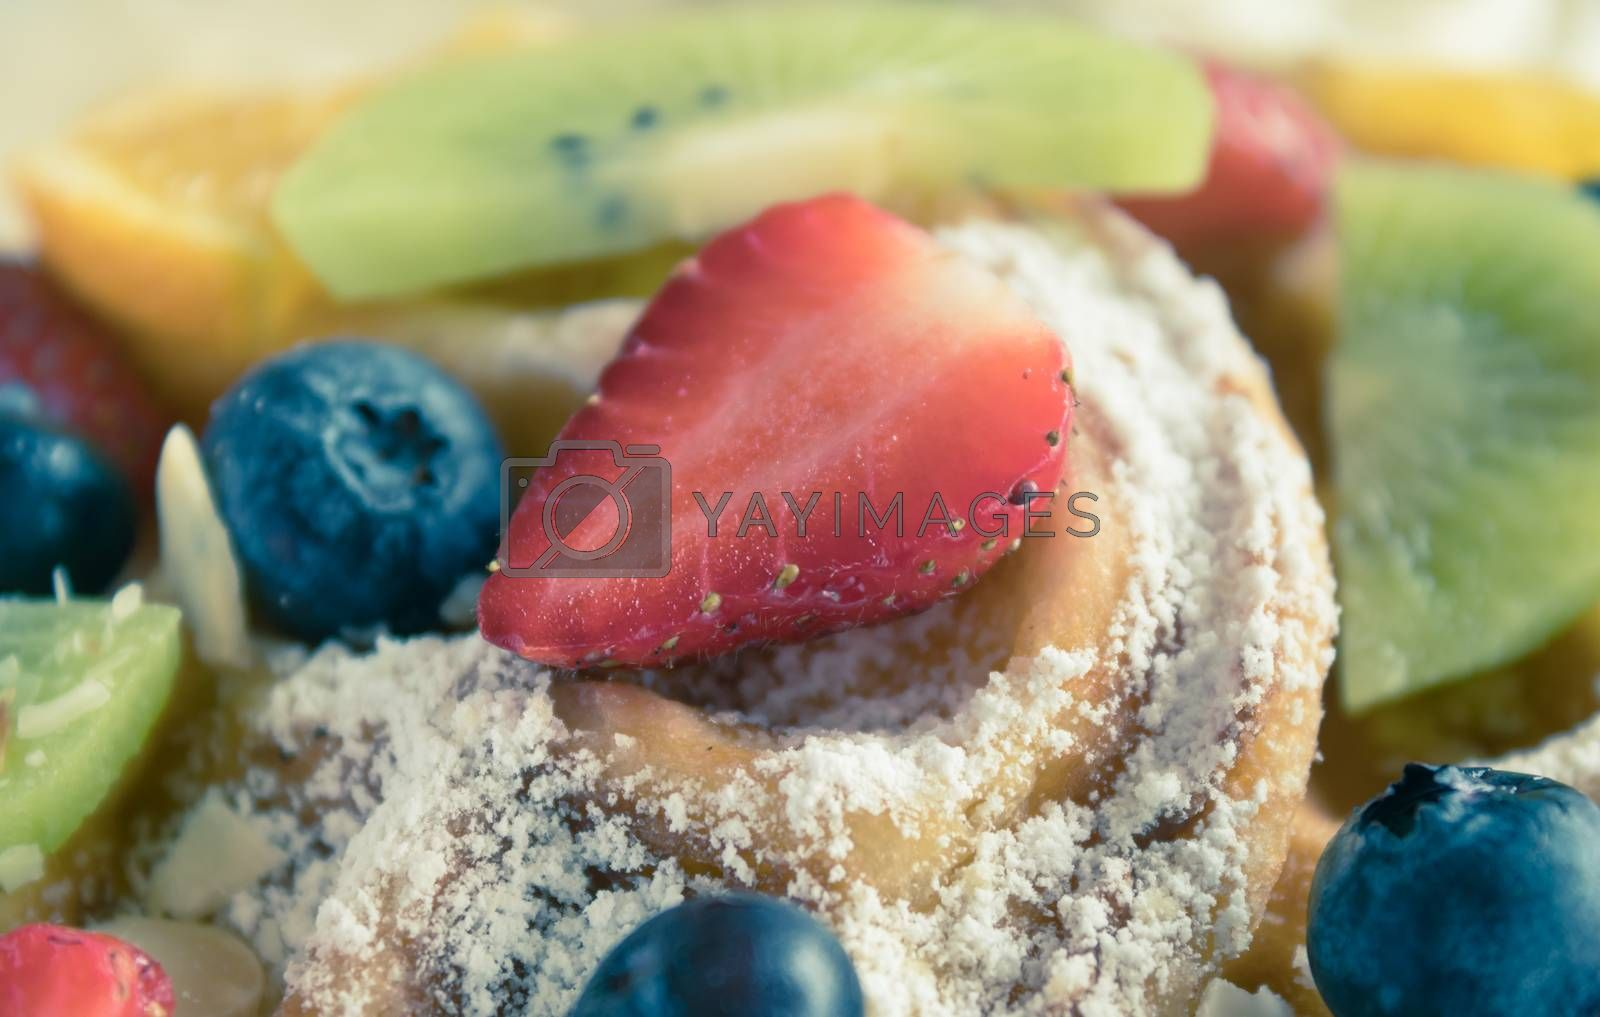 Vintage Strawberry Blueberry Kiwi Lemon Waffle Dessert Close Up. Fruity dessert food and drink category